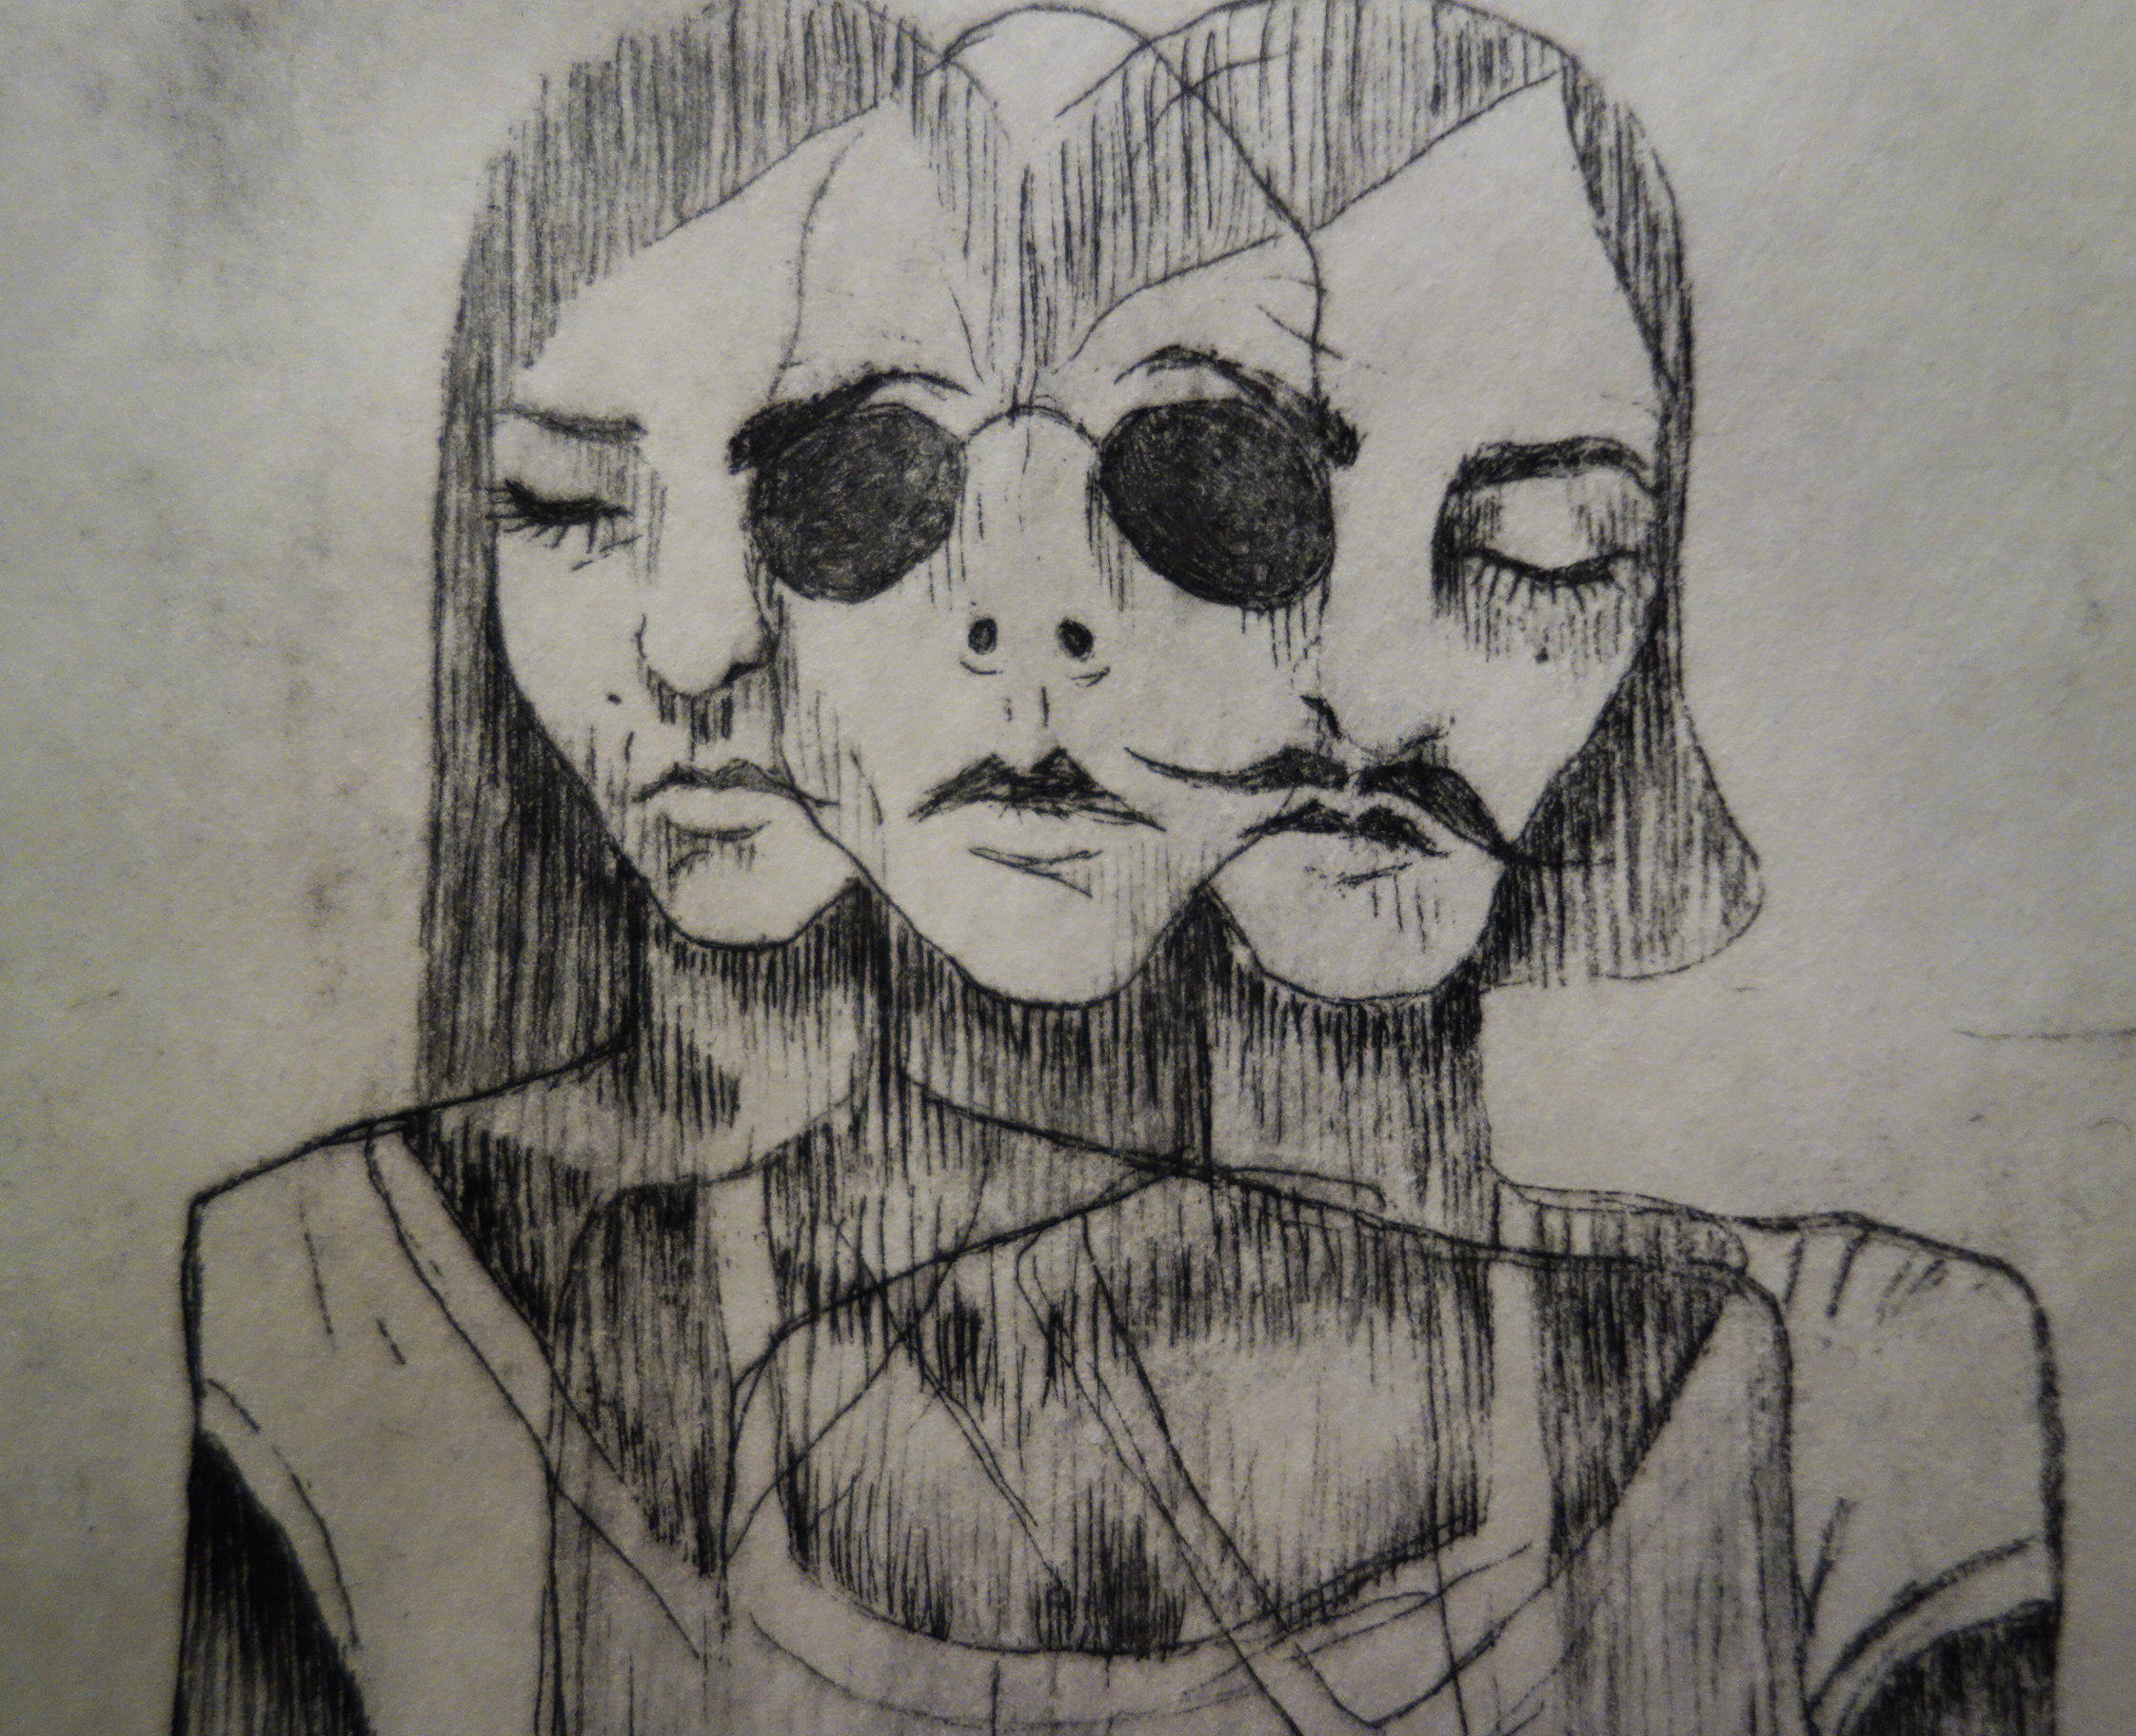 Etching, 18x10cm, 2014, sold